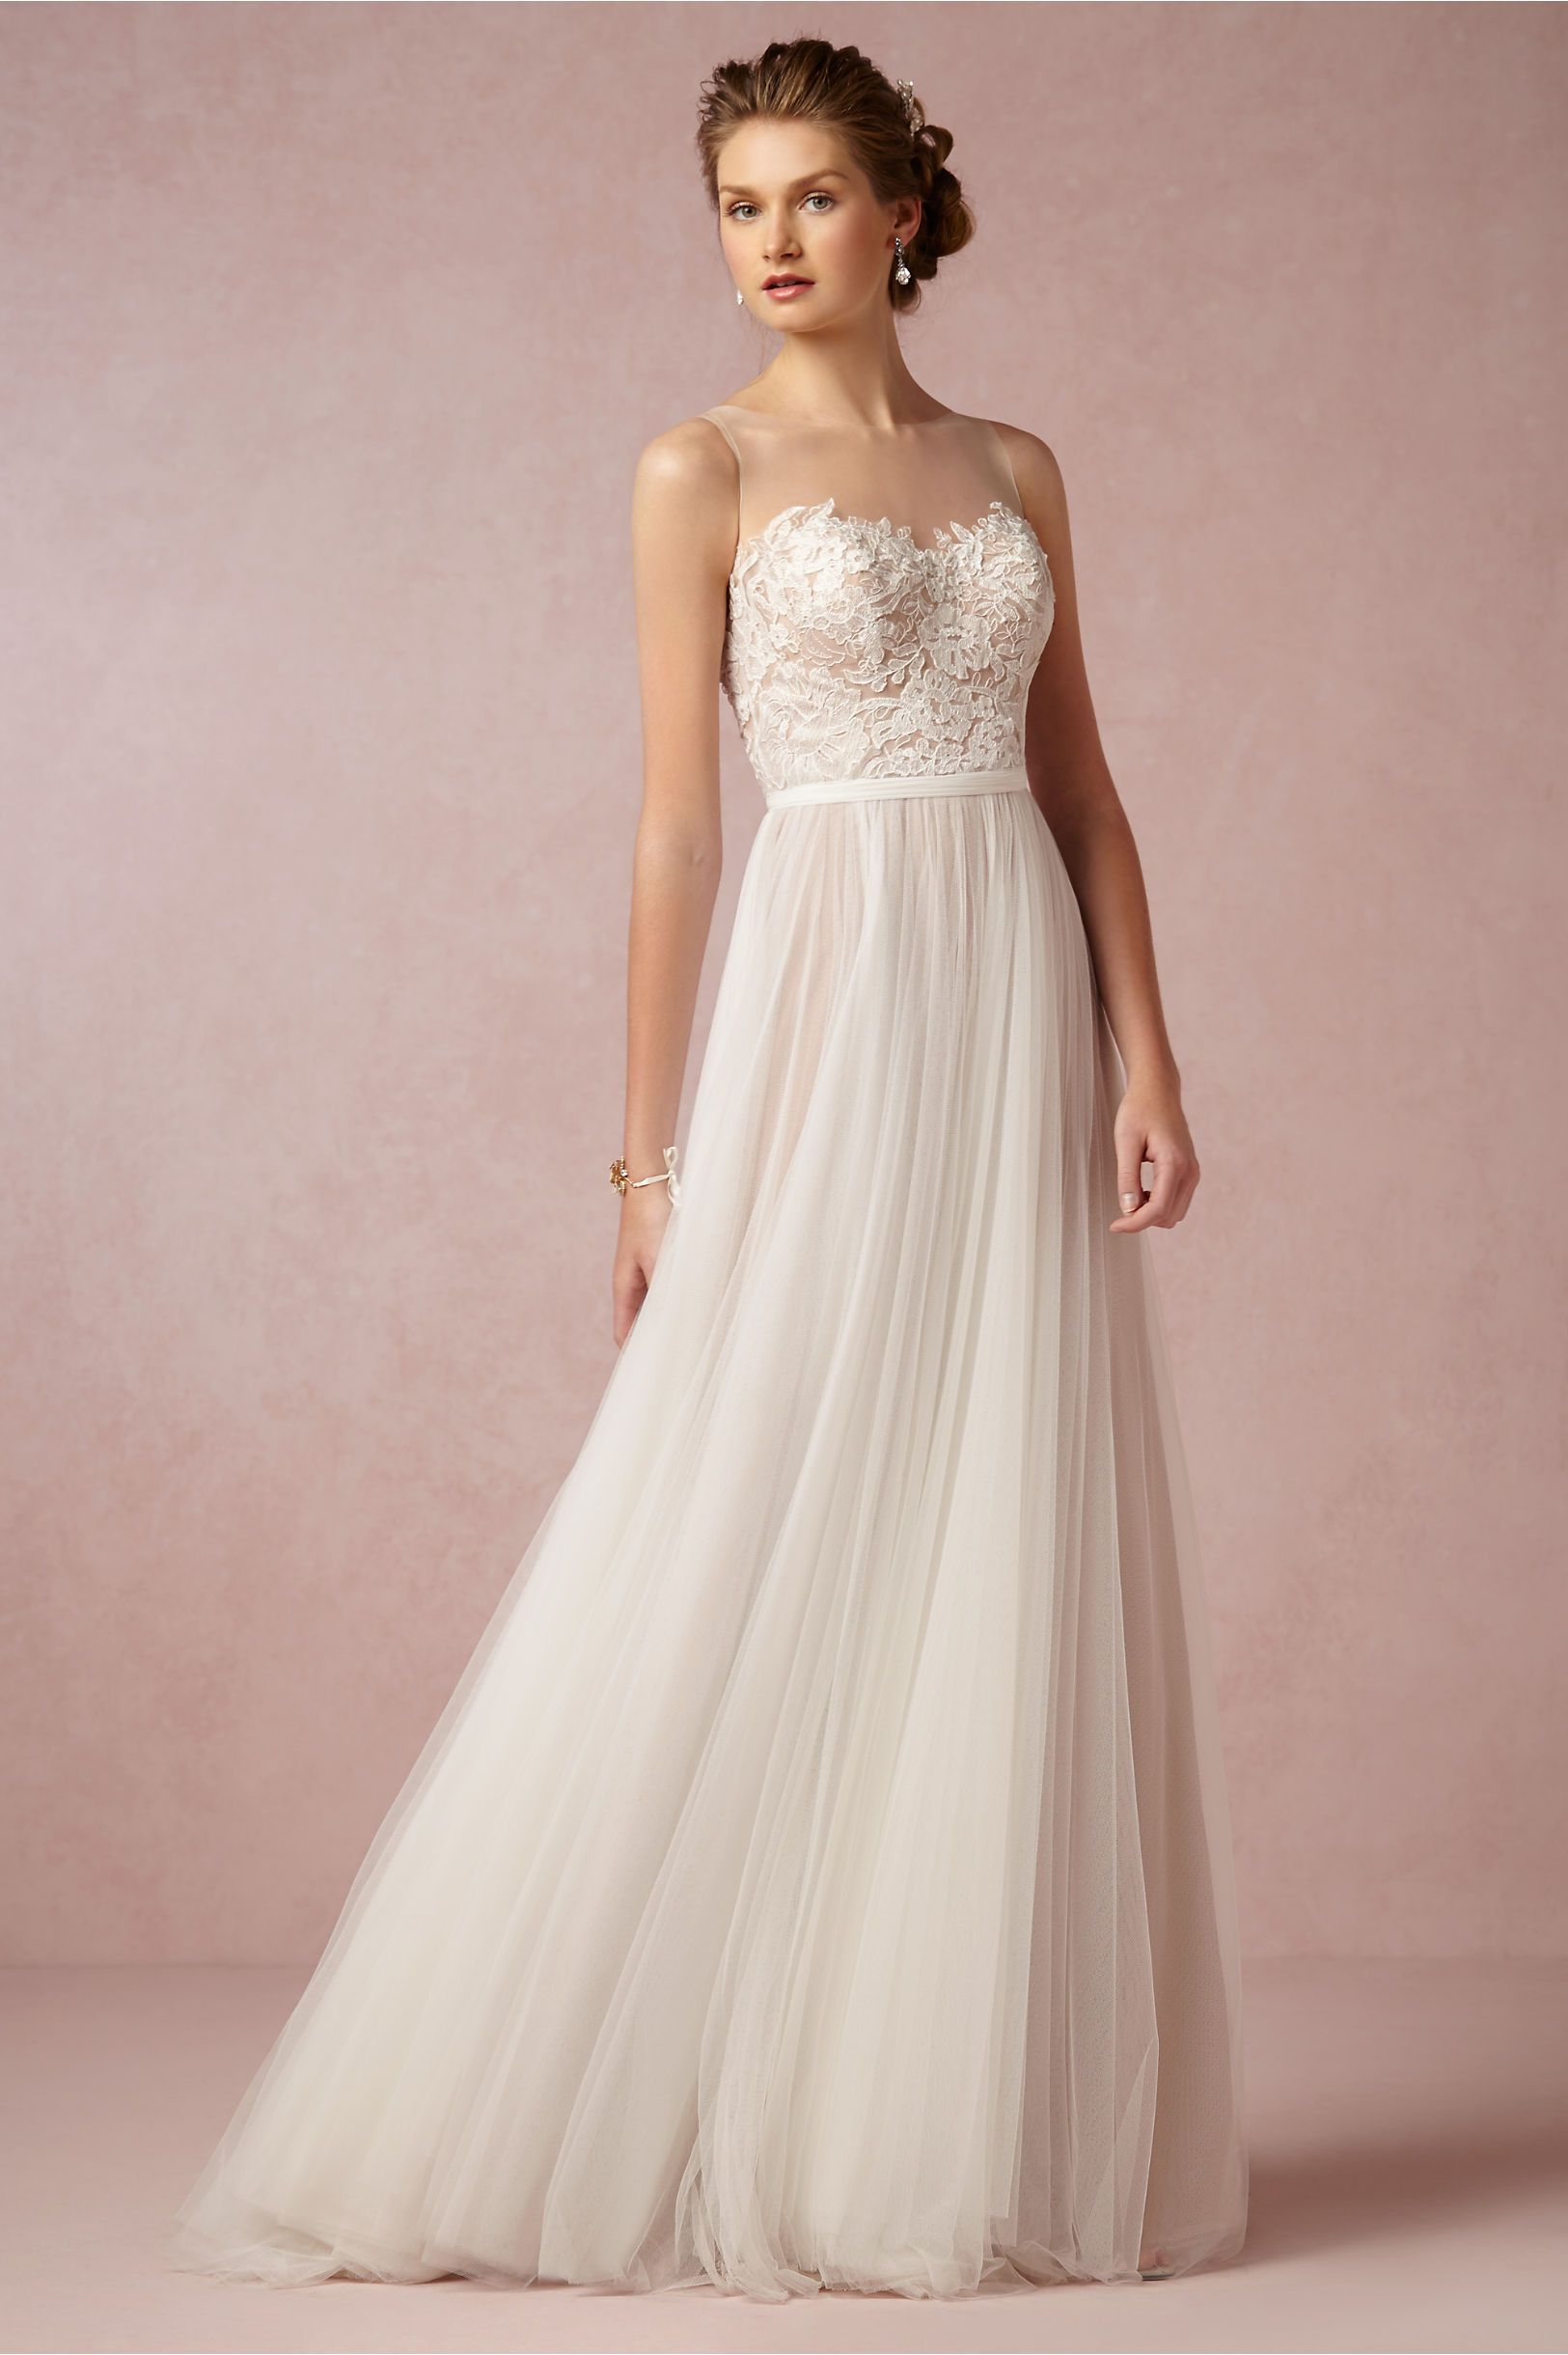 Penelope Gown in Bride Wedding Dresses at BHLDN | Beautiful ...